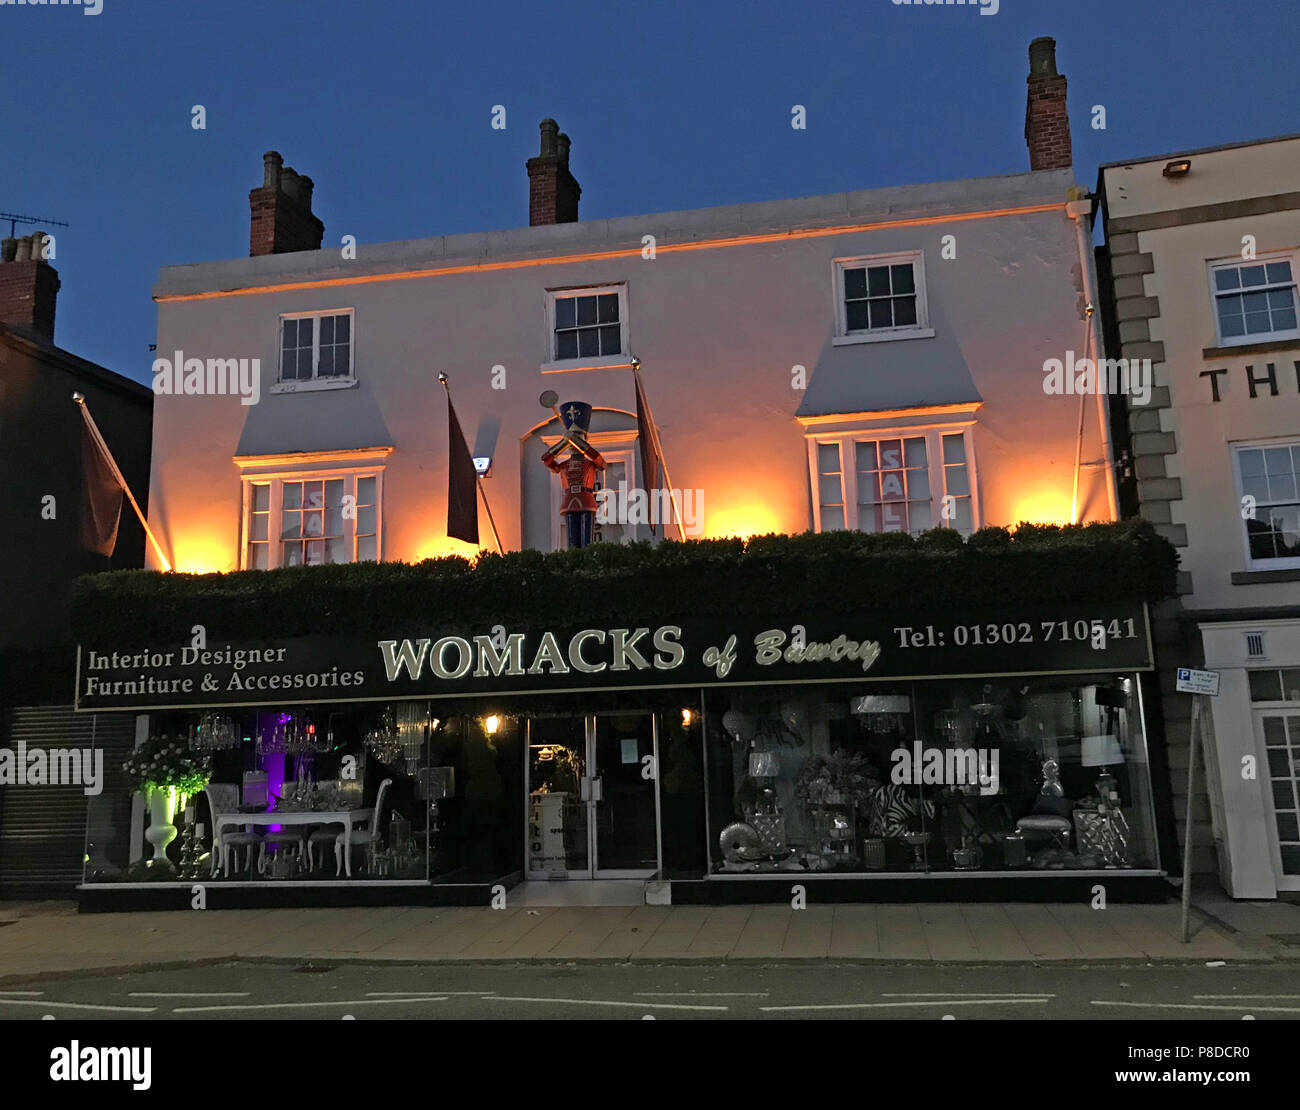 Womacks of Bawtry at dusk, 16-18 High St, Bawtry, Doncaster, South Yorkshire, England, UK,  DN10 6JE - Stock Image